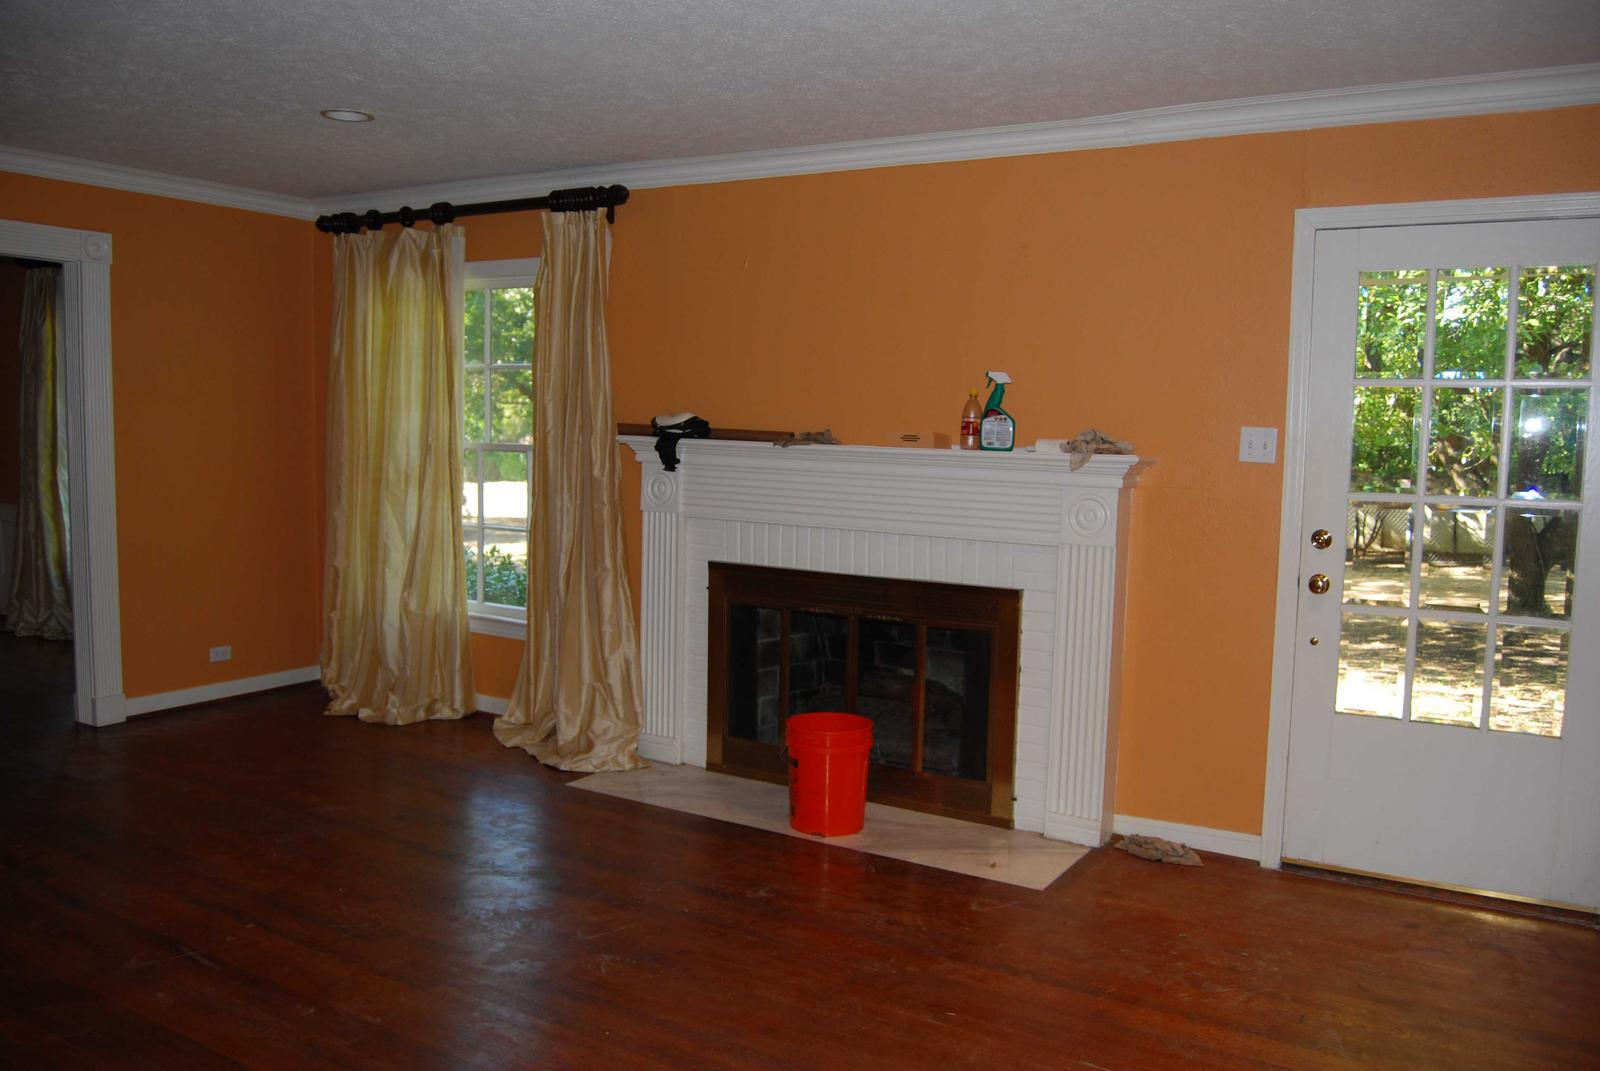 look at pics and help suggest wall color hardwood floors paint